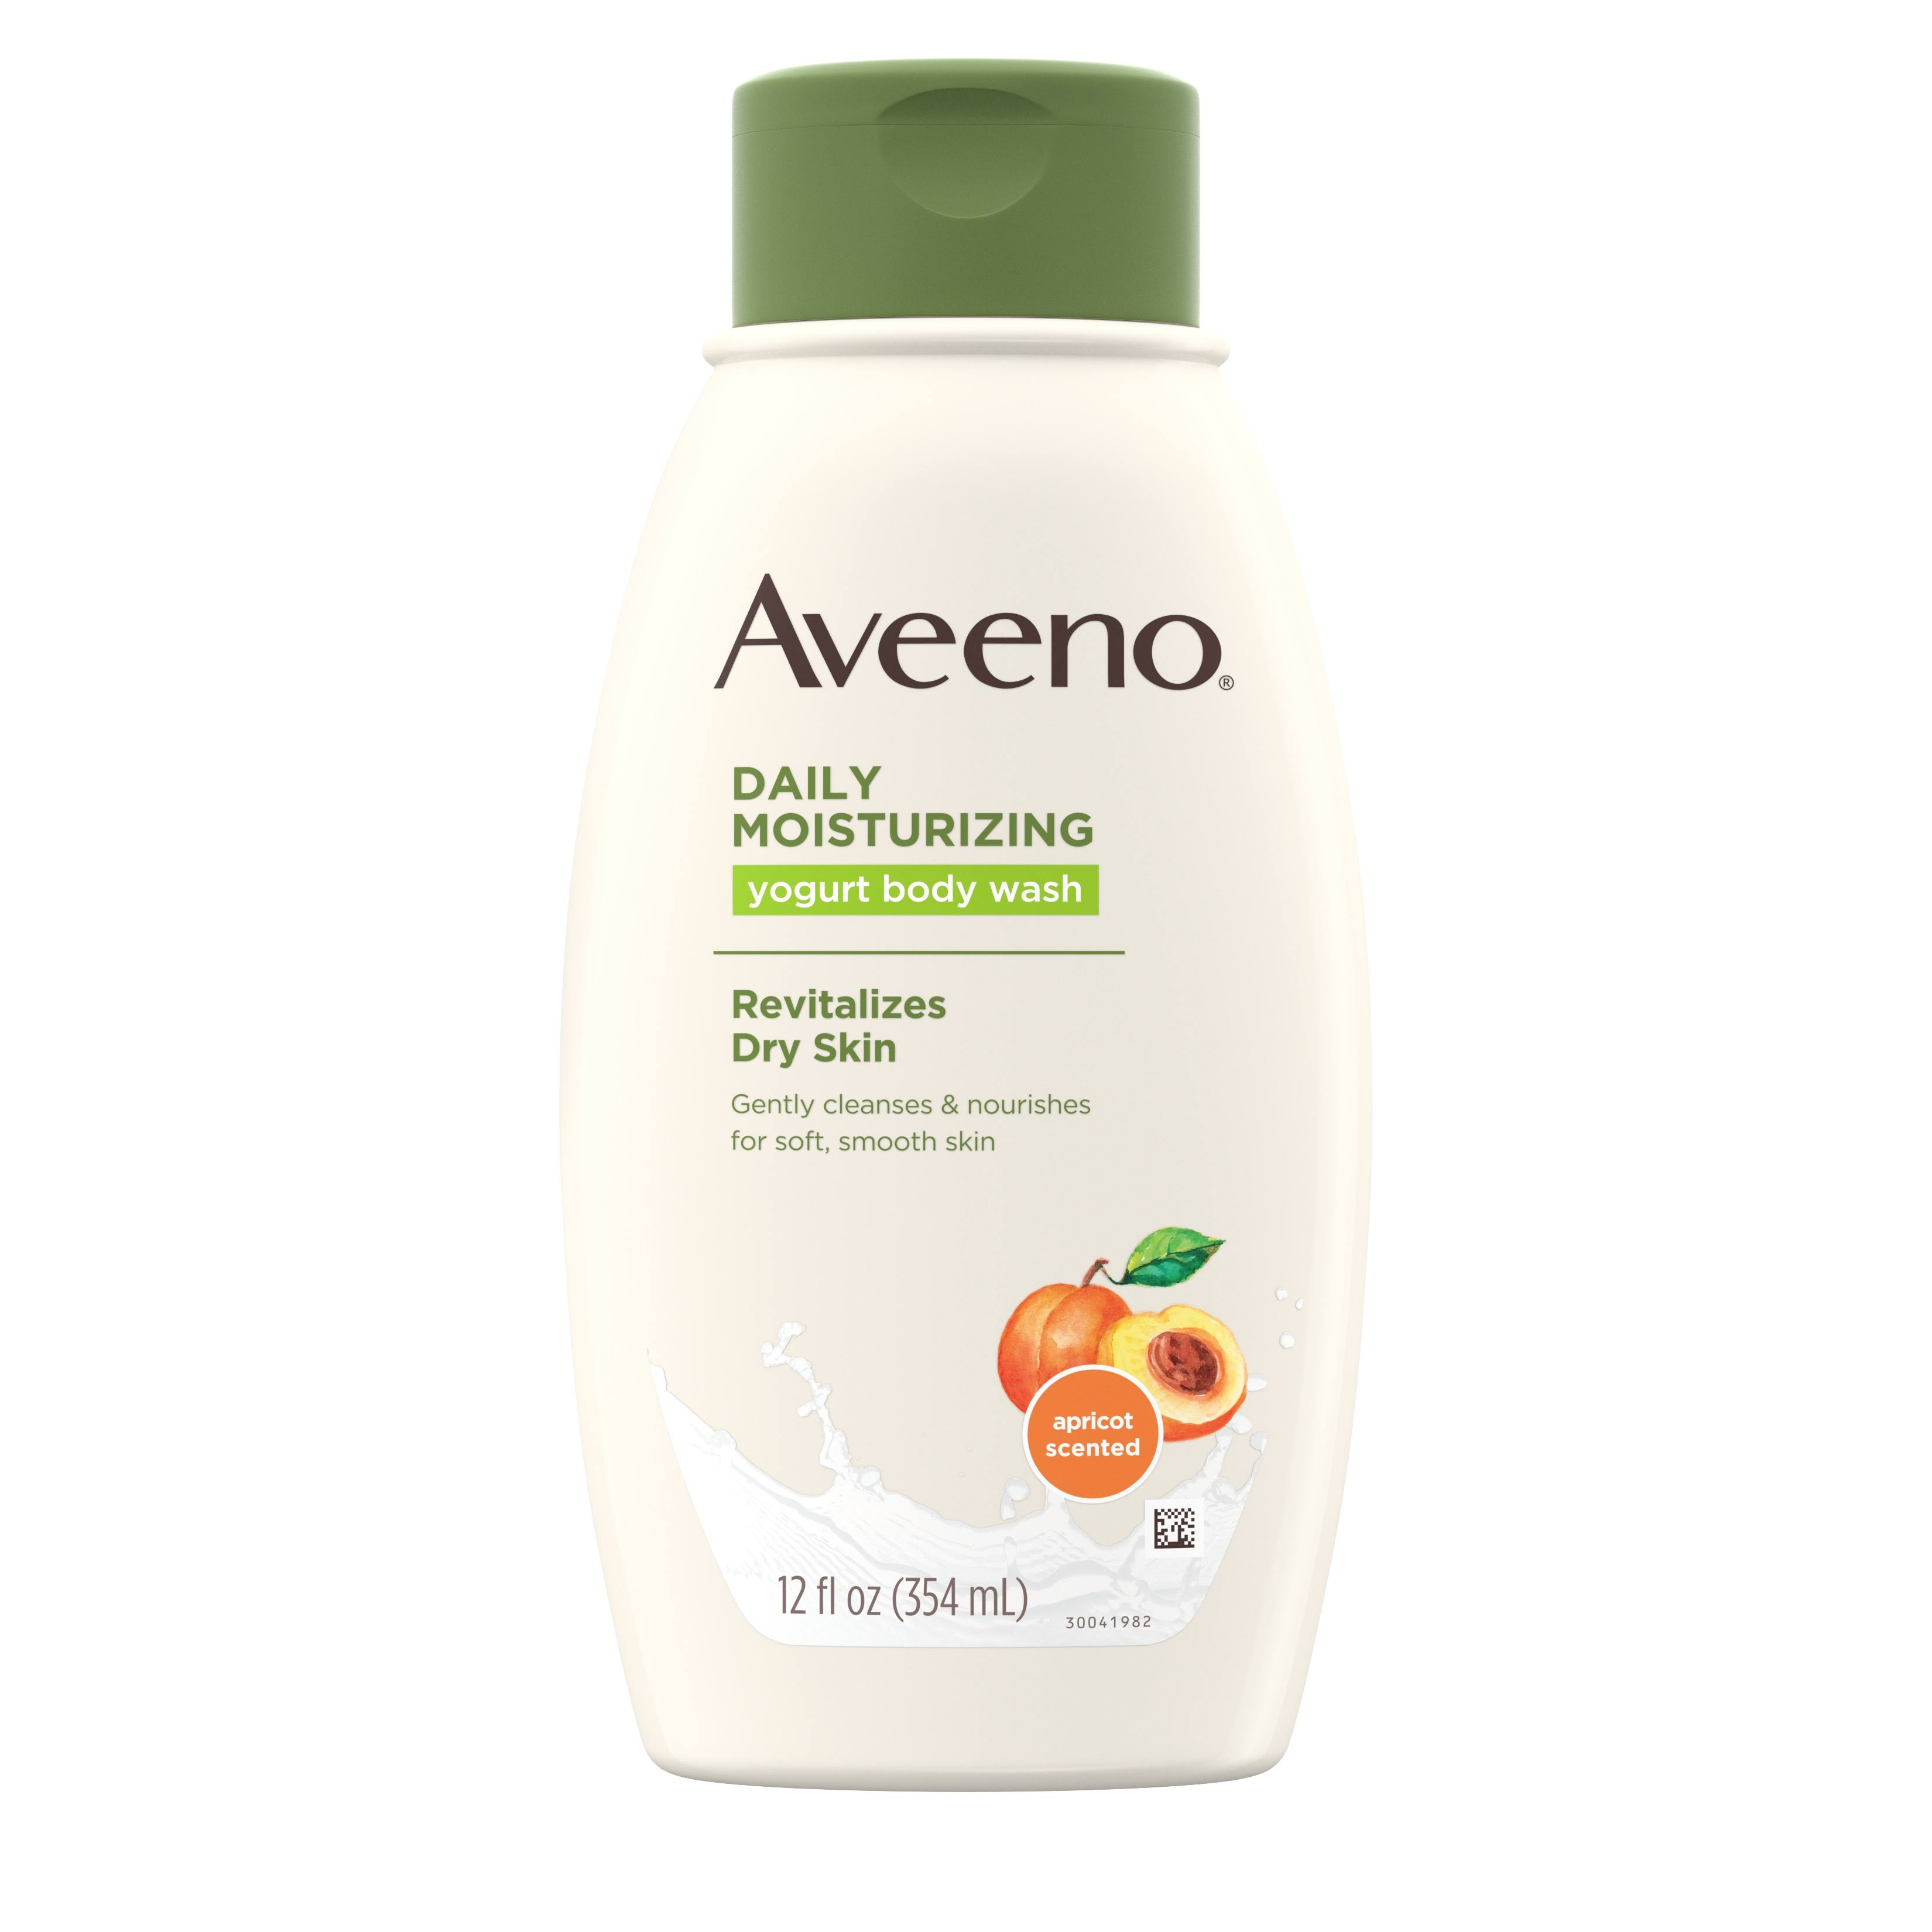 Aveeno Active Naturals Daily Moisturizing Body Yogurt Body Wash - Apricot and Honey, 12oz